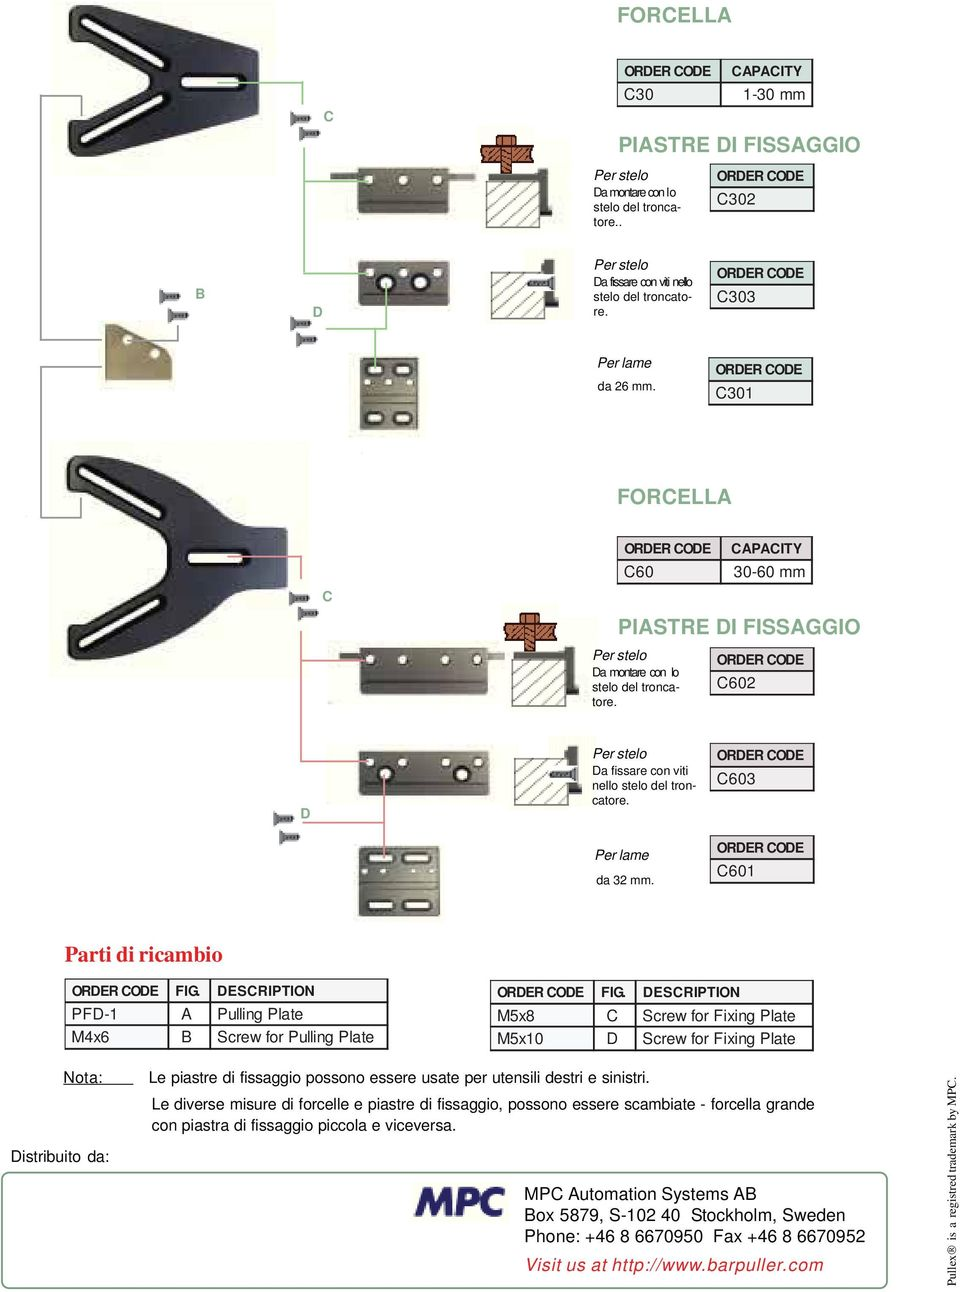 C603 C601 Parti di ricambio O RDER CODE FIG. DESCRIPTION PFD-1 A Pulling Plate M4x6 B Screw for Pulling Plate O RDER CODE FIG.